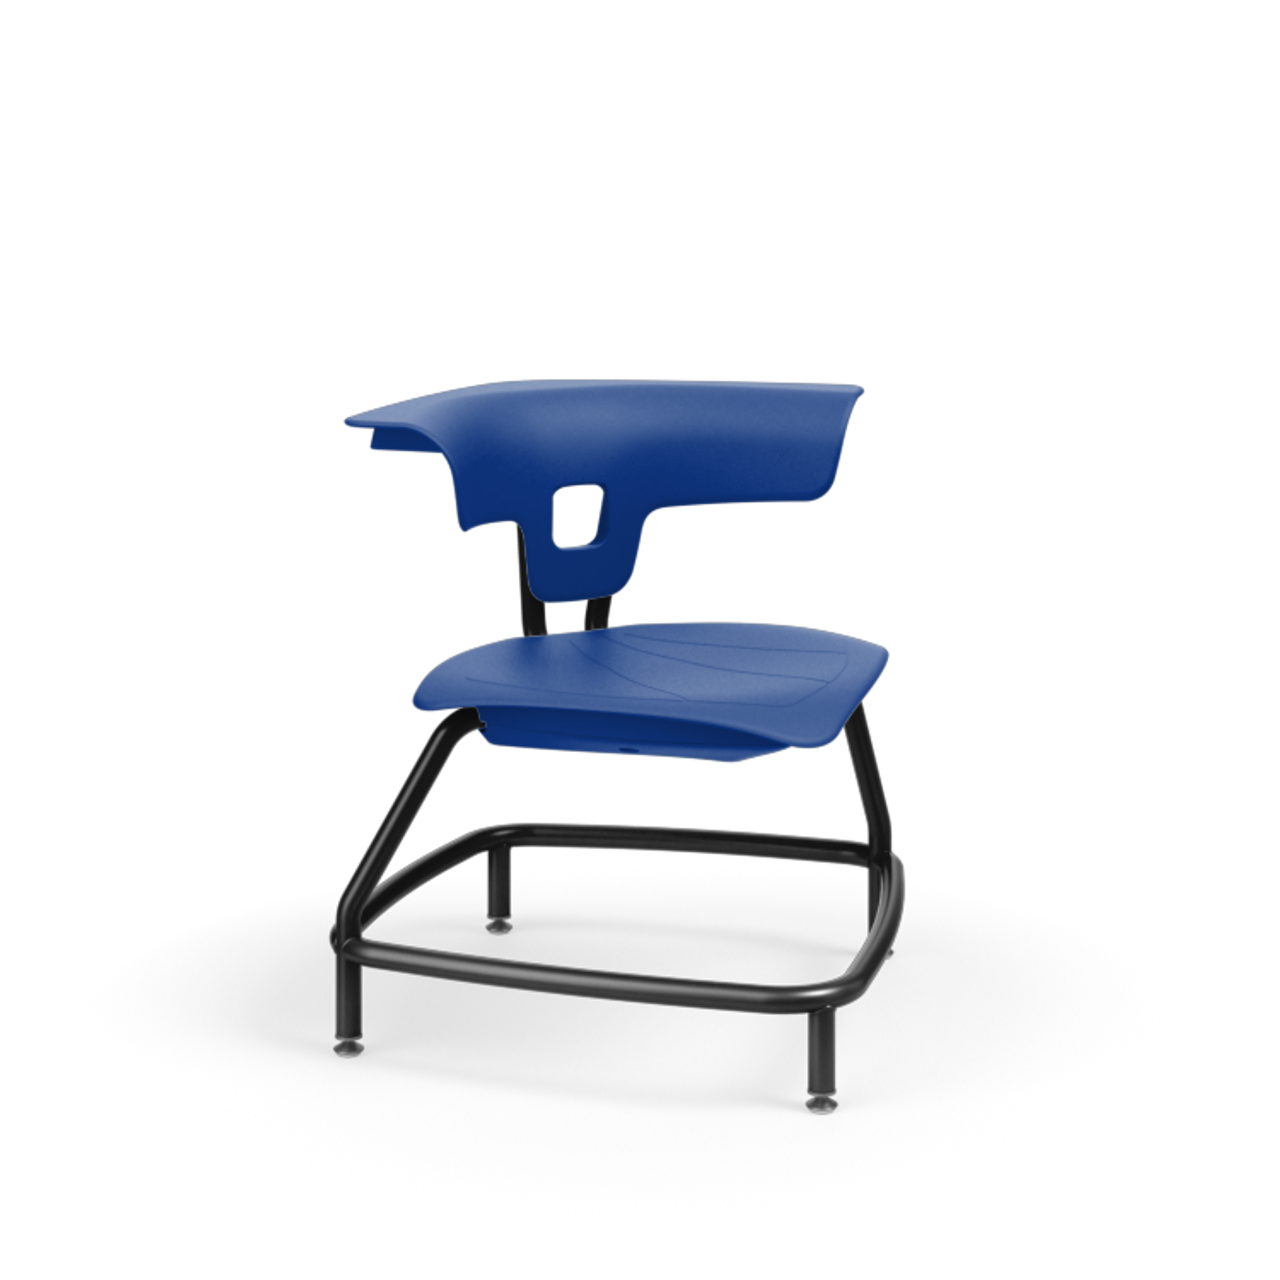 Terrific Ki Ruckus Rku100H15Nb Polypropylene Stack Chair With Glides 15 Inch Seat Height Bralicious Painted Fabric Chair Ideas Braliciousco